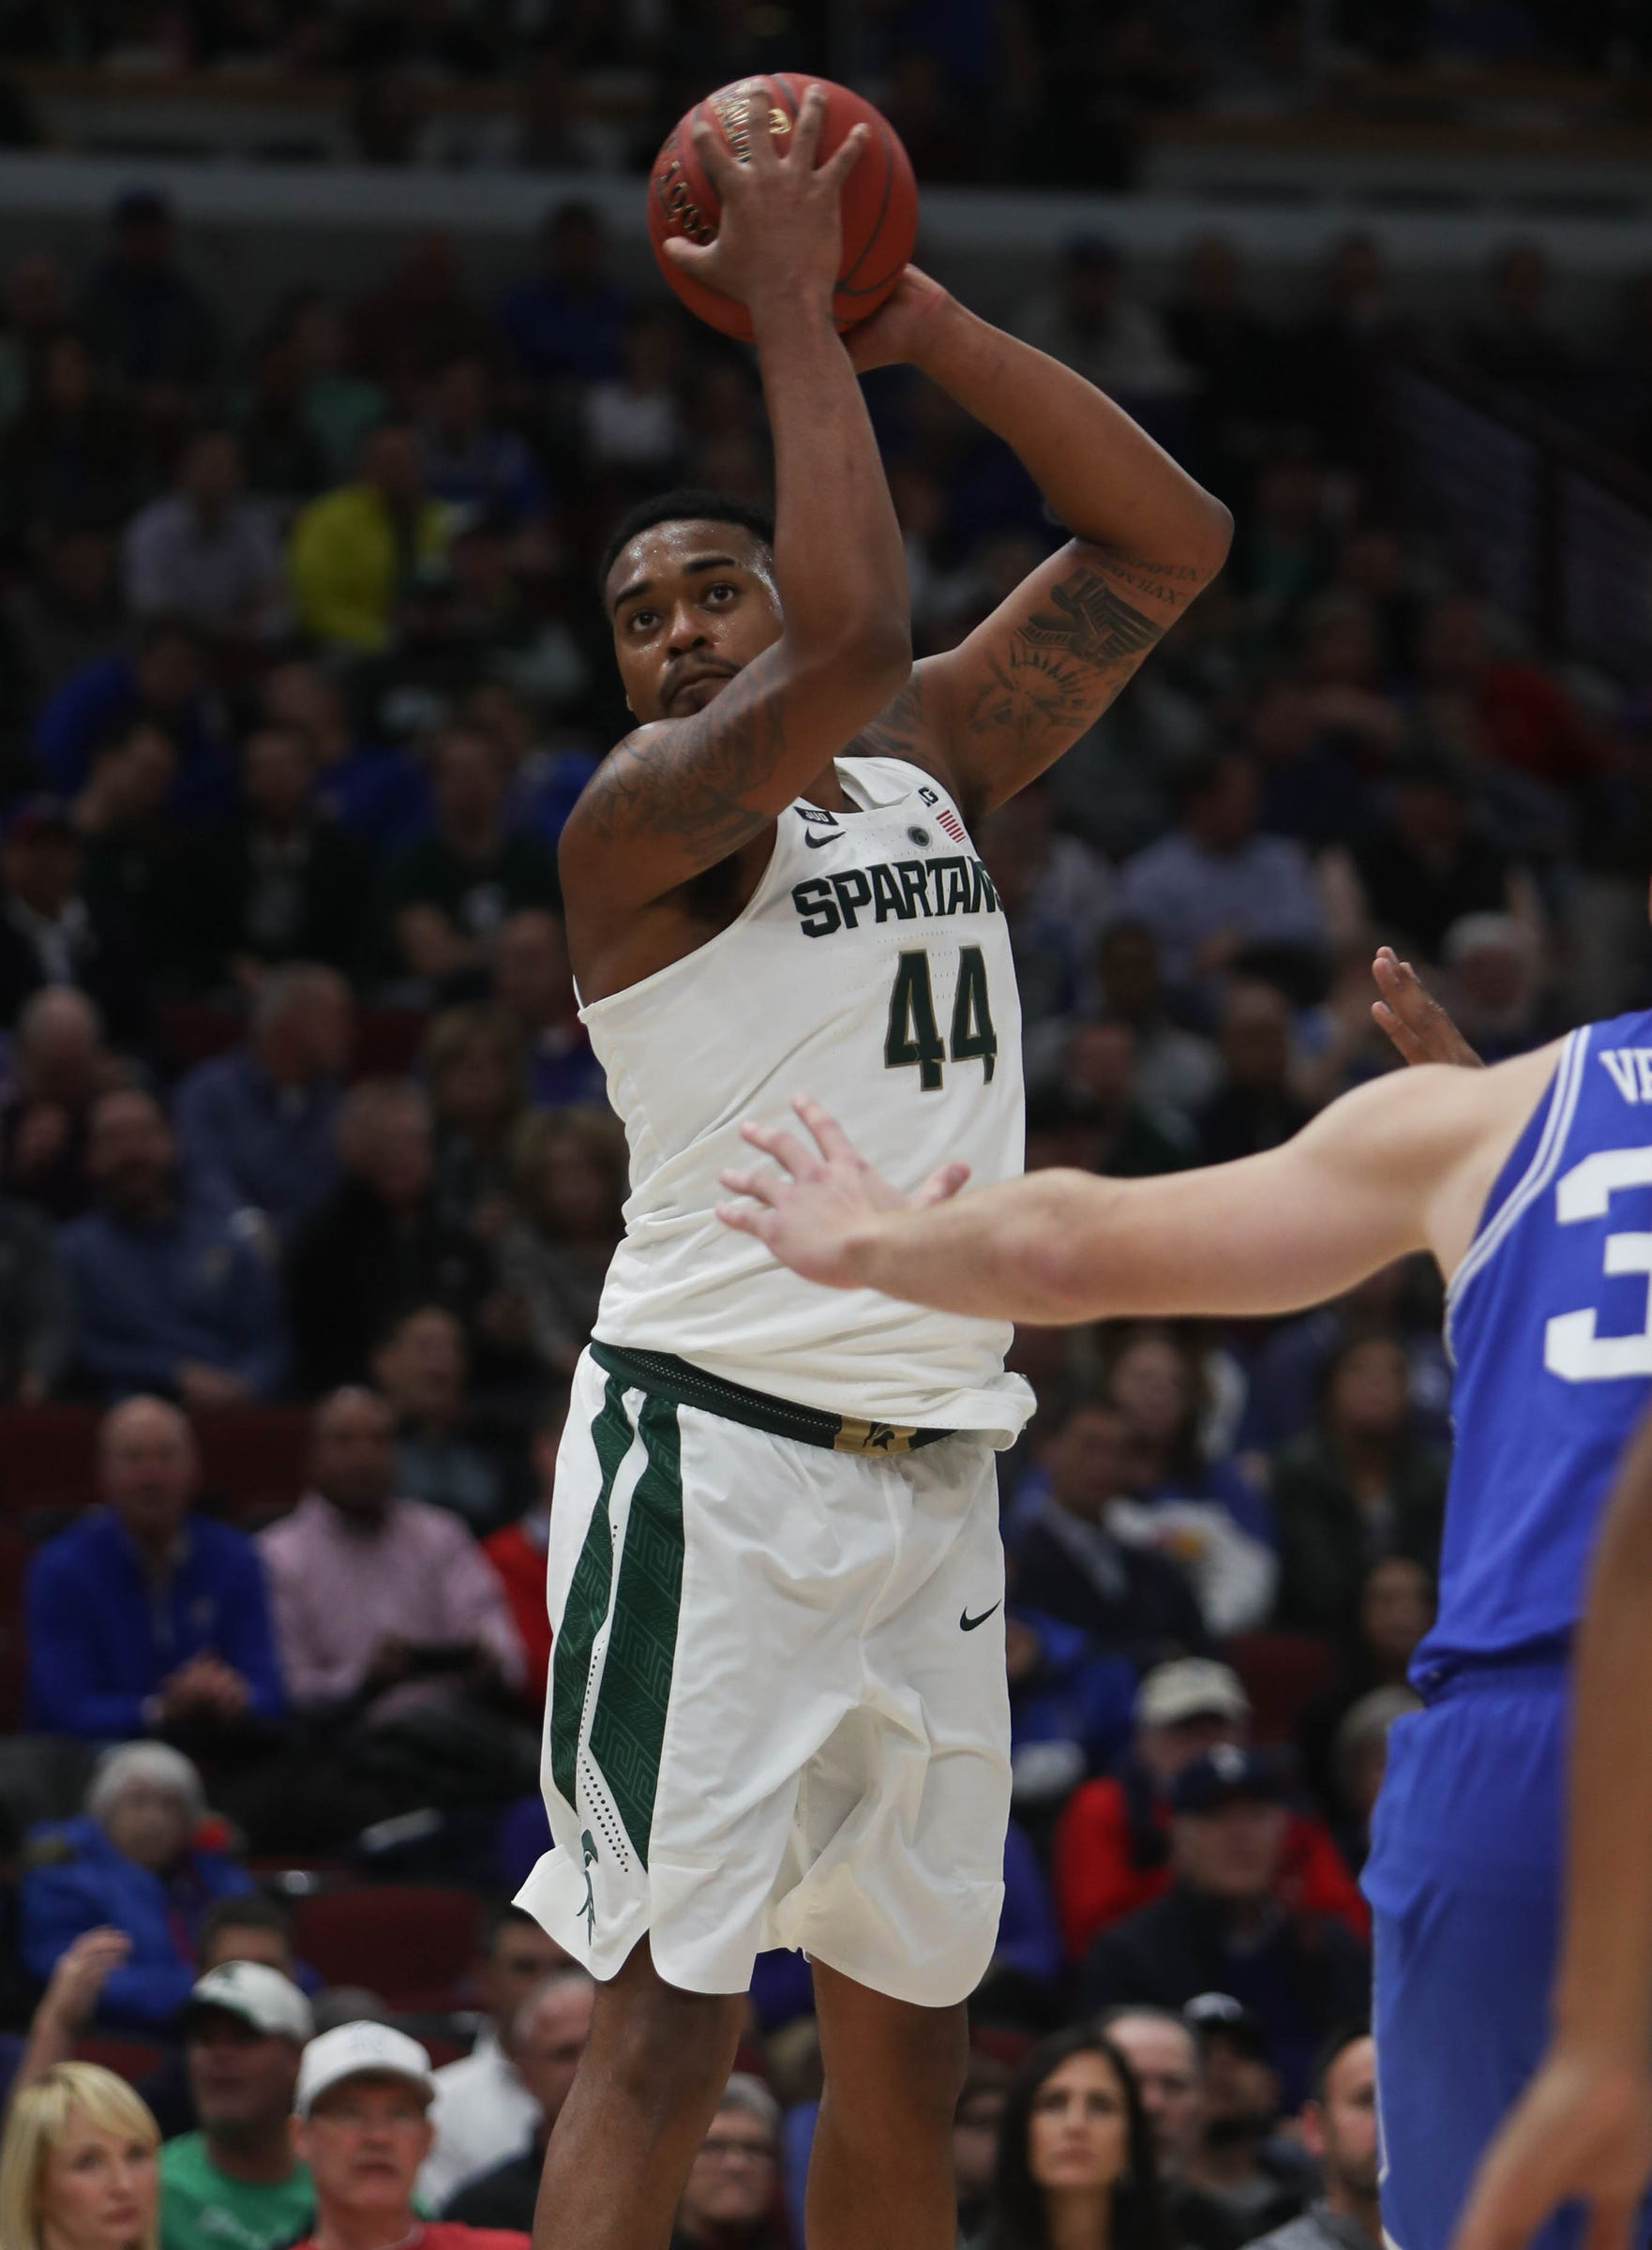 Michigan State's Nick Ward rebounds against Duke during